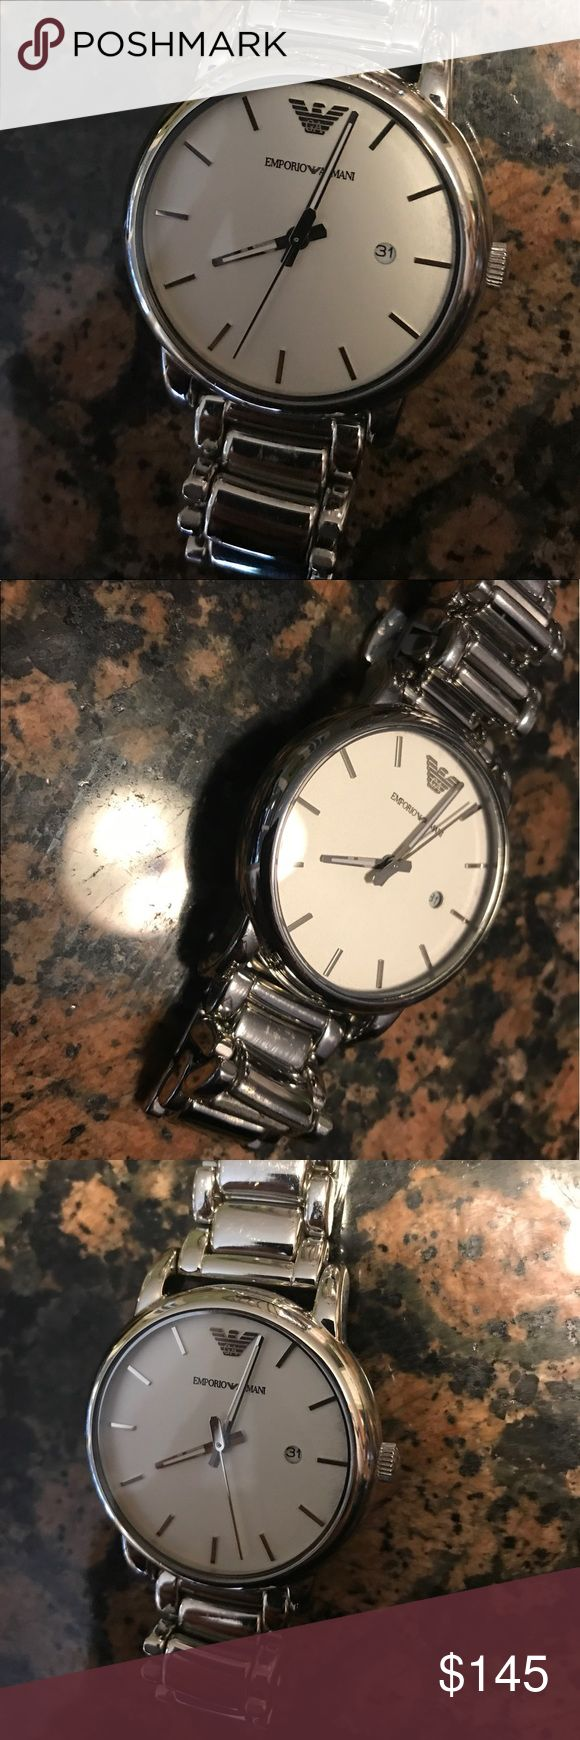 Emporio Armani Watch - Men's This beautiful watch goes with just about anything, lightly worn. Classy and stylish. In great condition! A must have Emporio Armani Accessories Watches